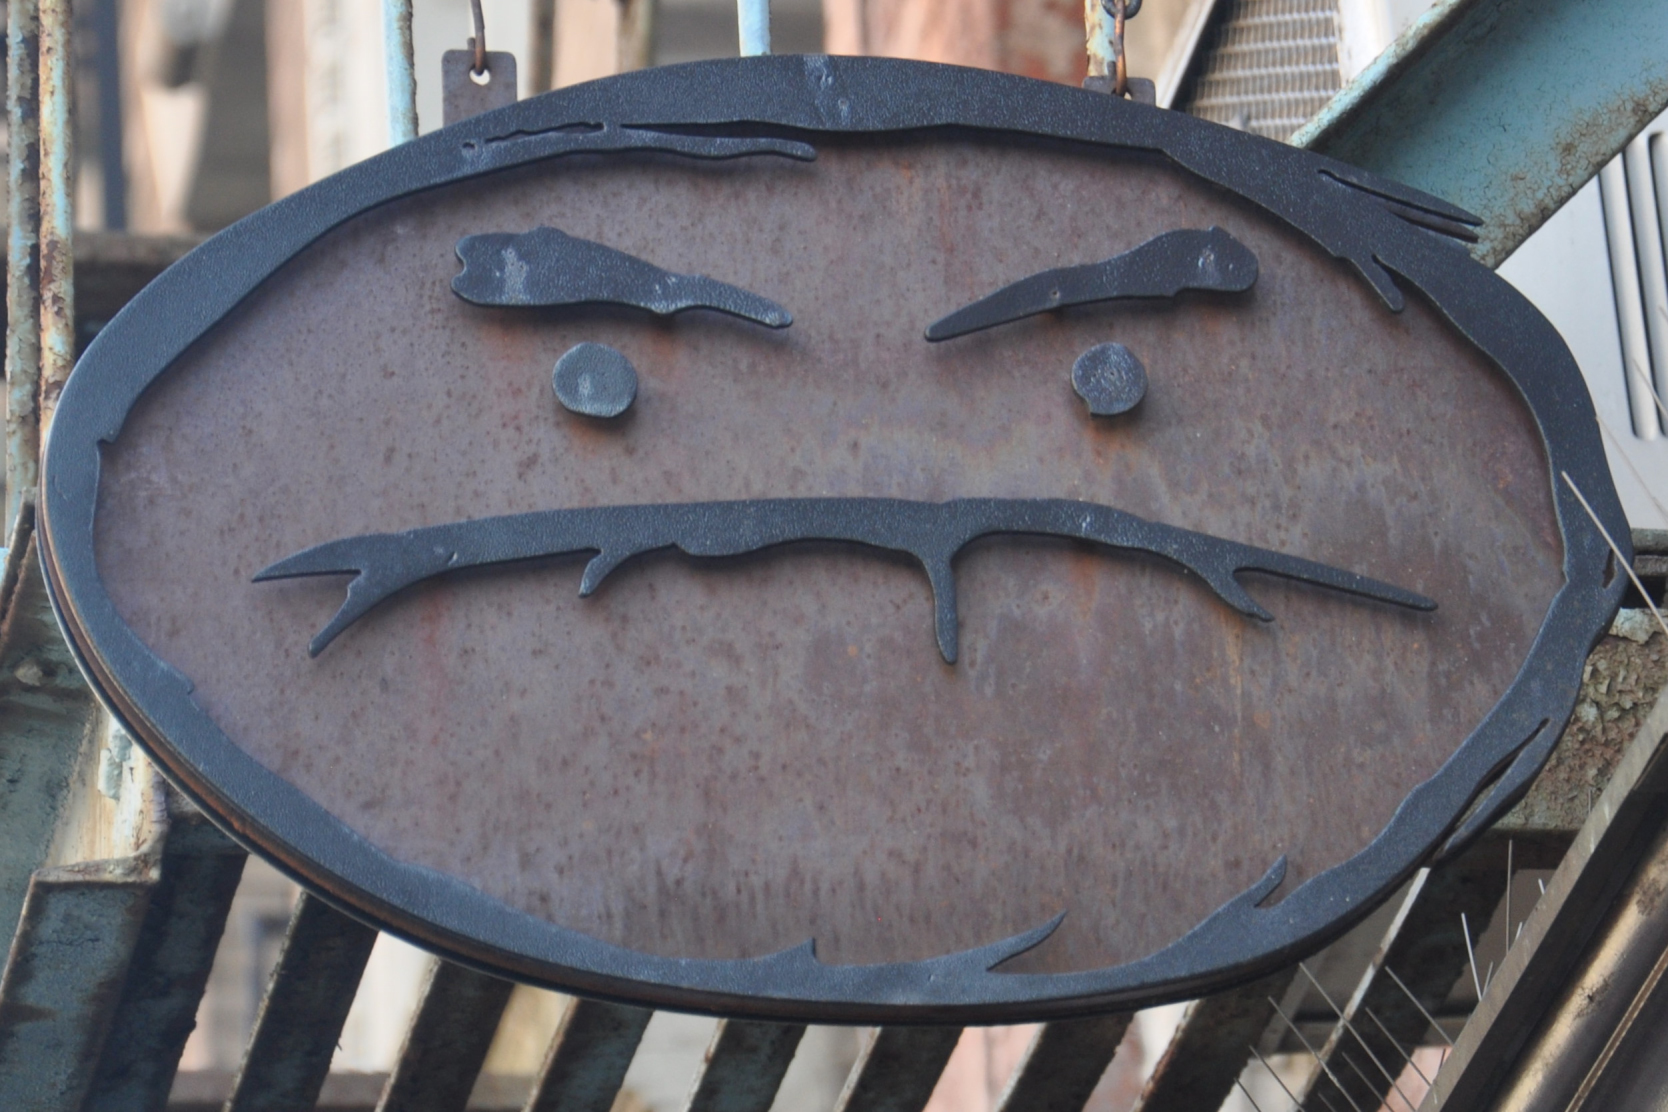 The somewhat unwelcoming Cafe Grumpy sign: an elongated oval, stylised as a face, with frowning eyebrows and a downturned mouth.